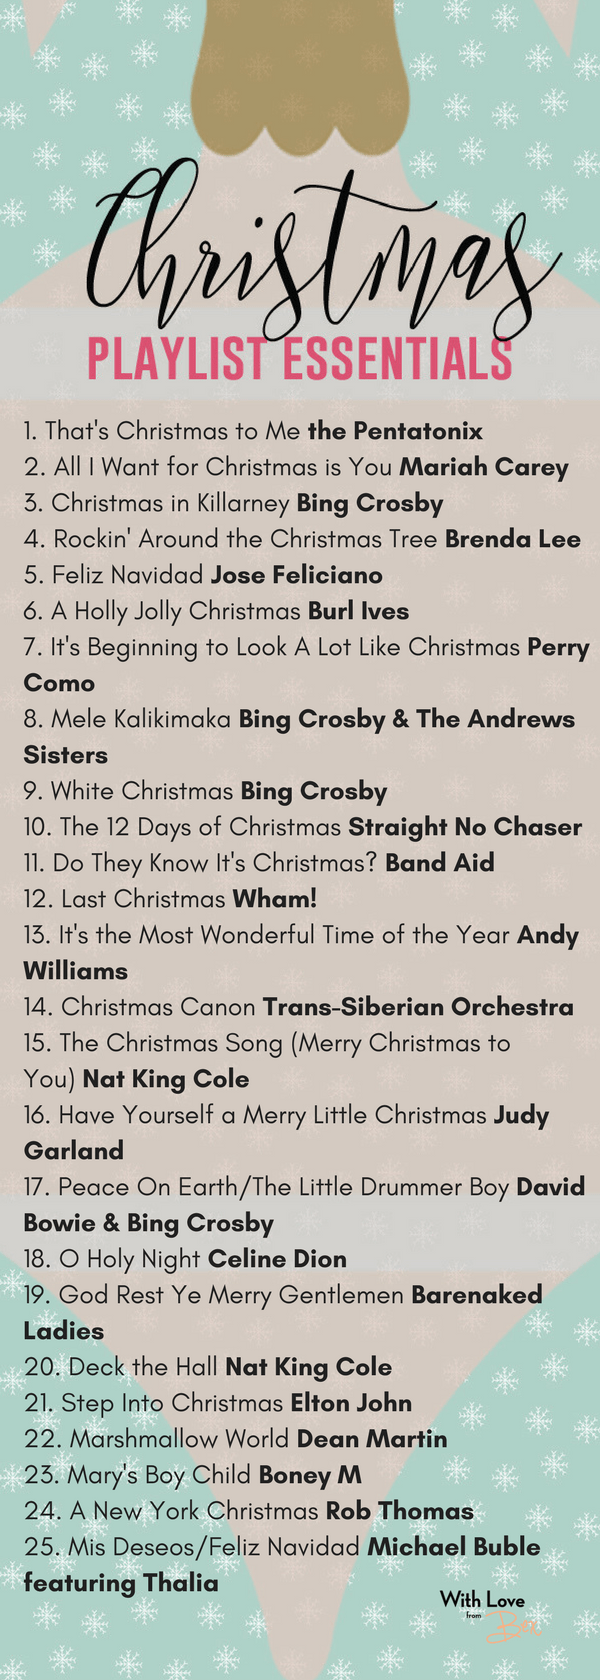 Best Christmas Songs for your playlist